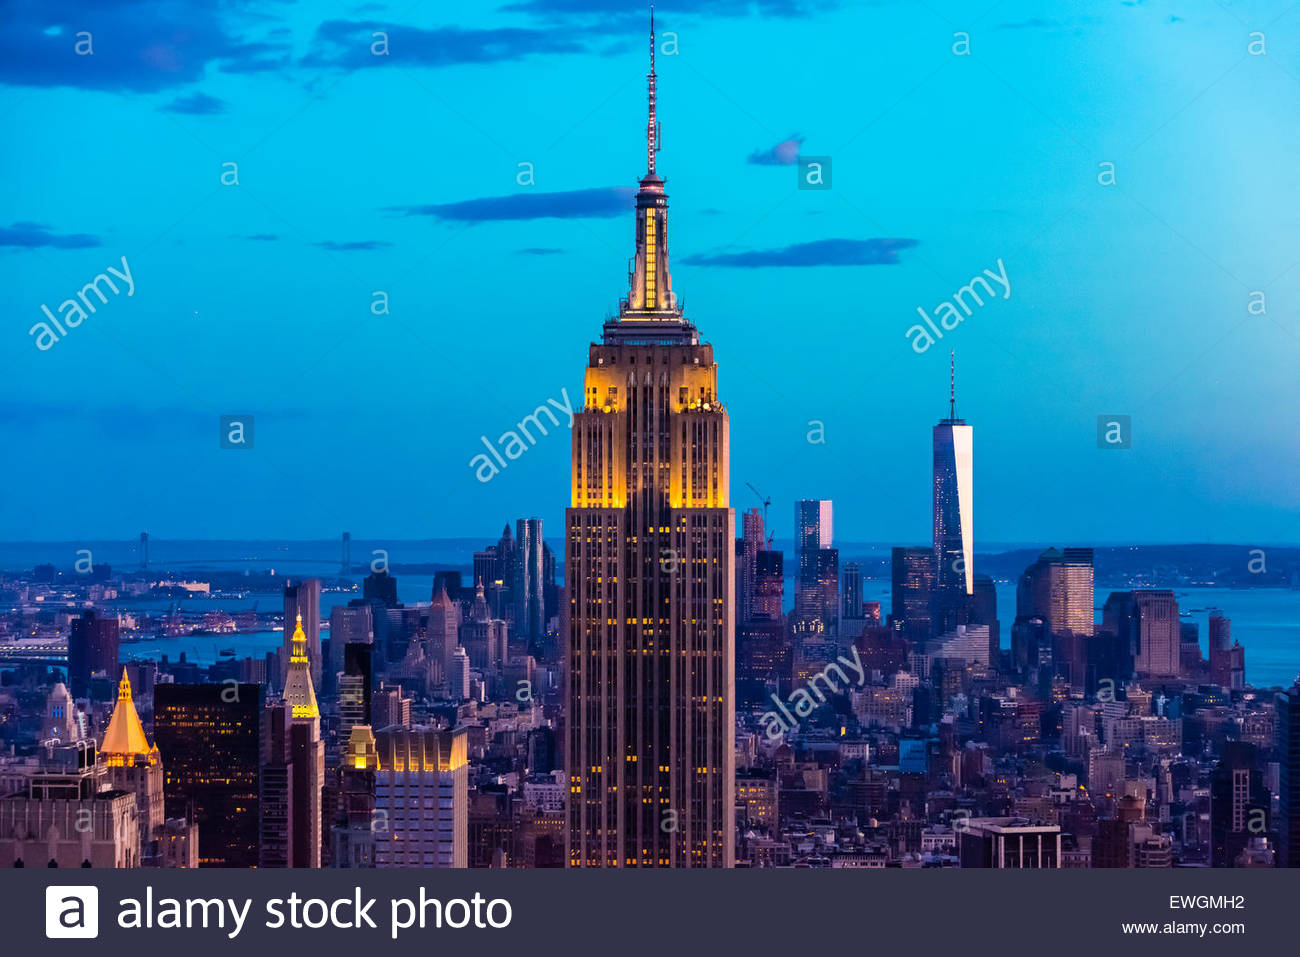 Empire State Building with One World Trade Center in background on right, New York, New York USA. - Stock Image